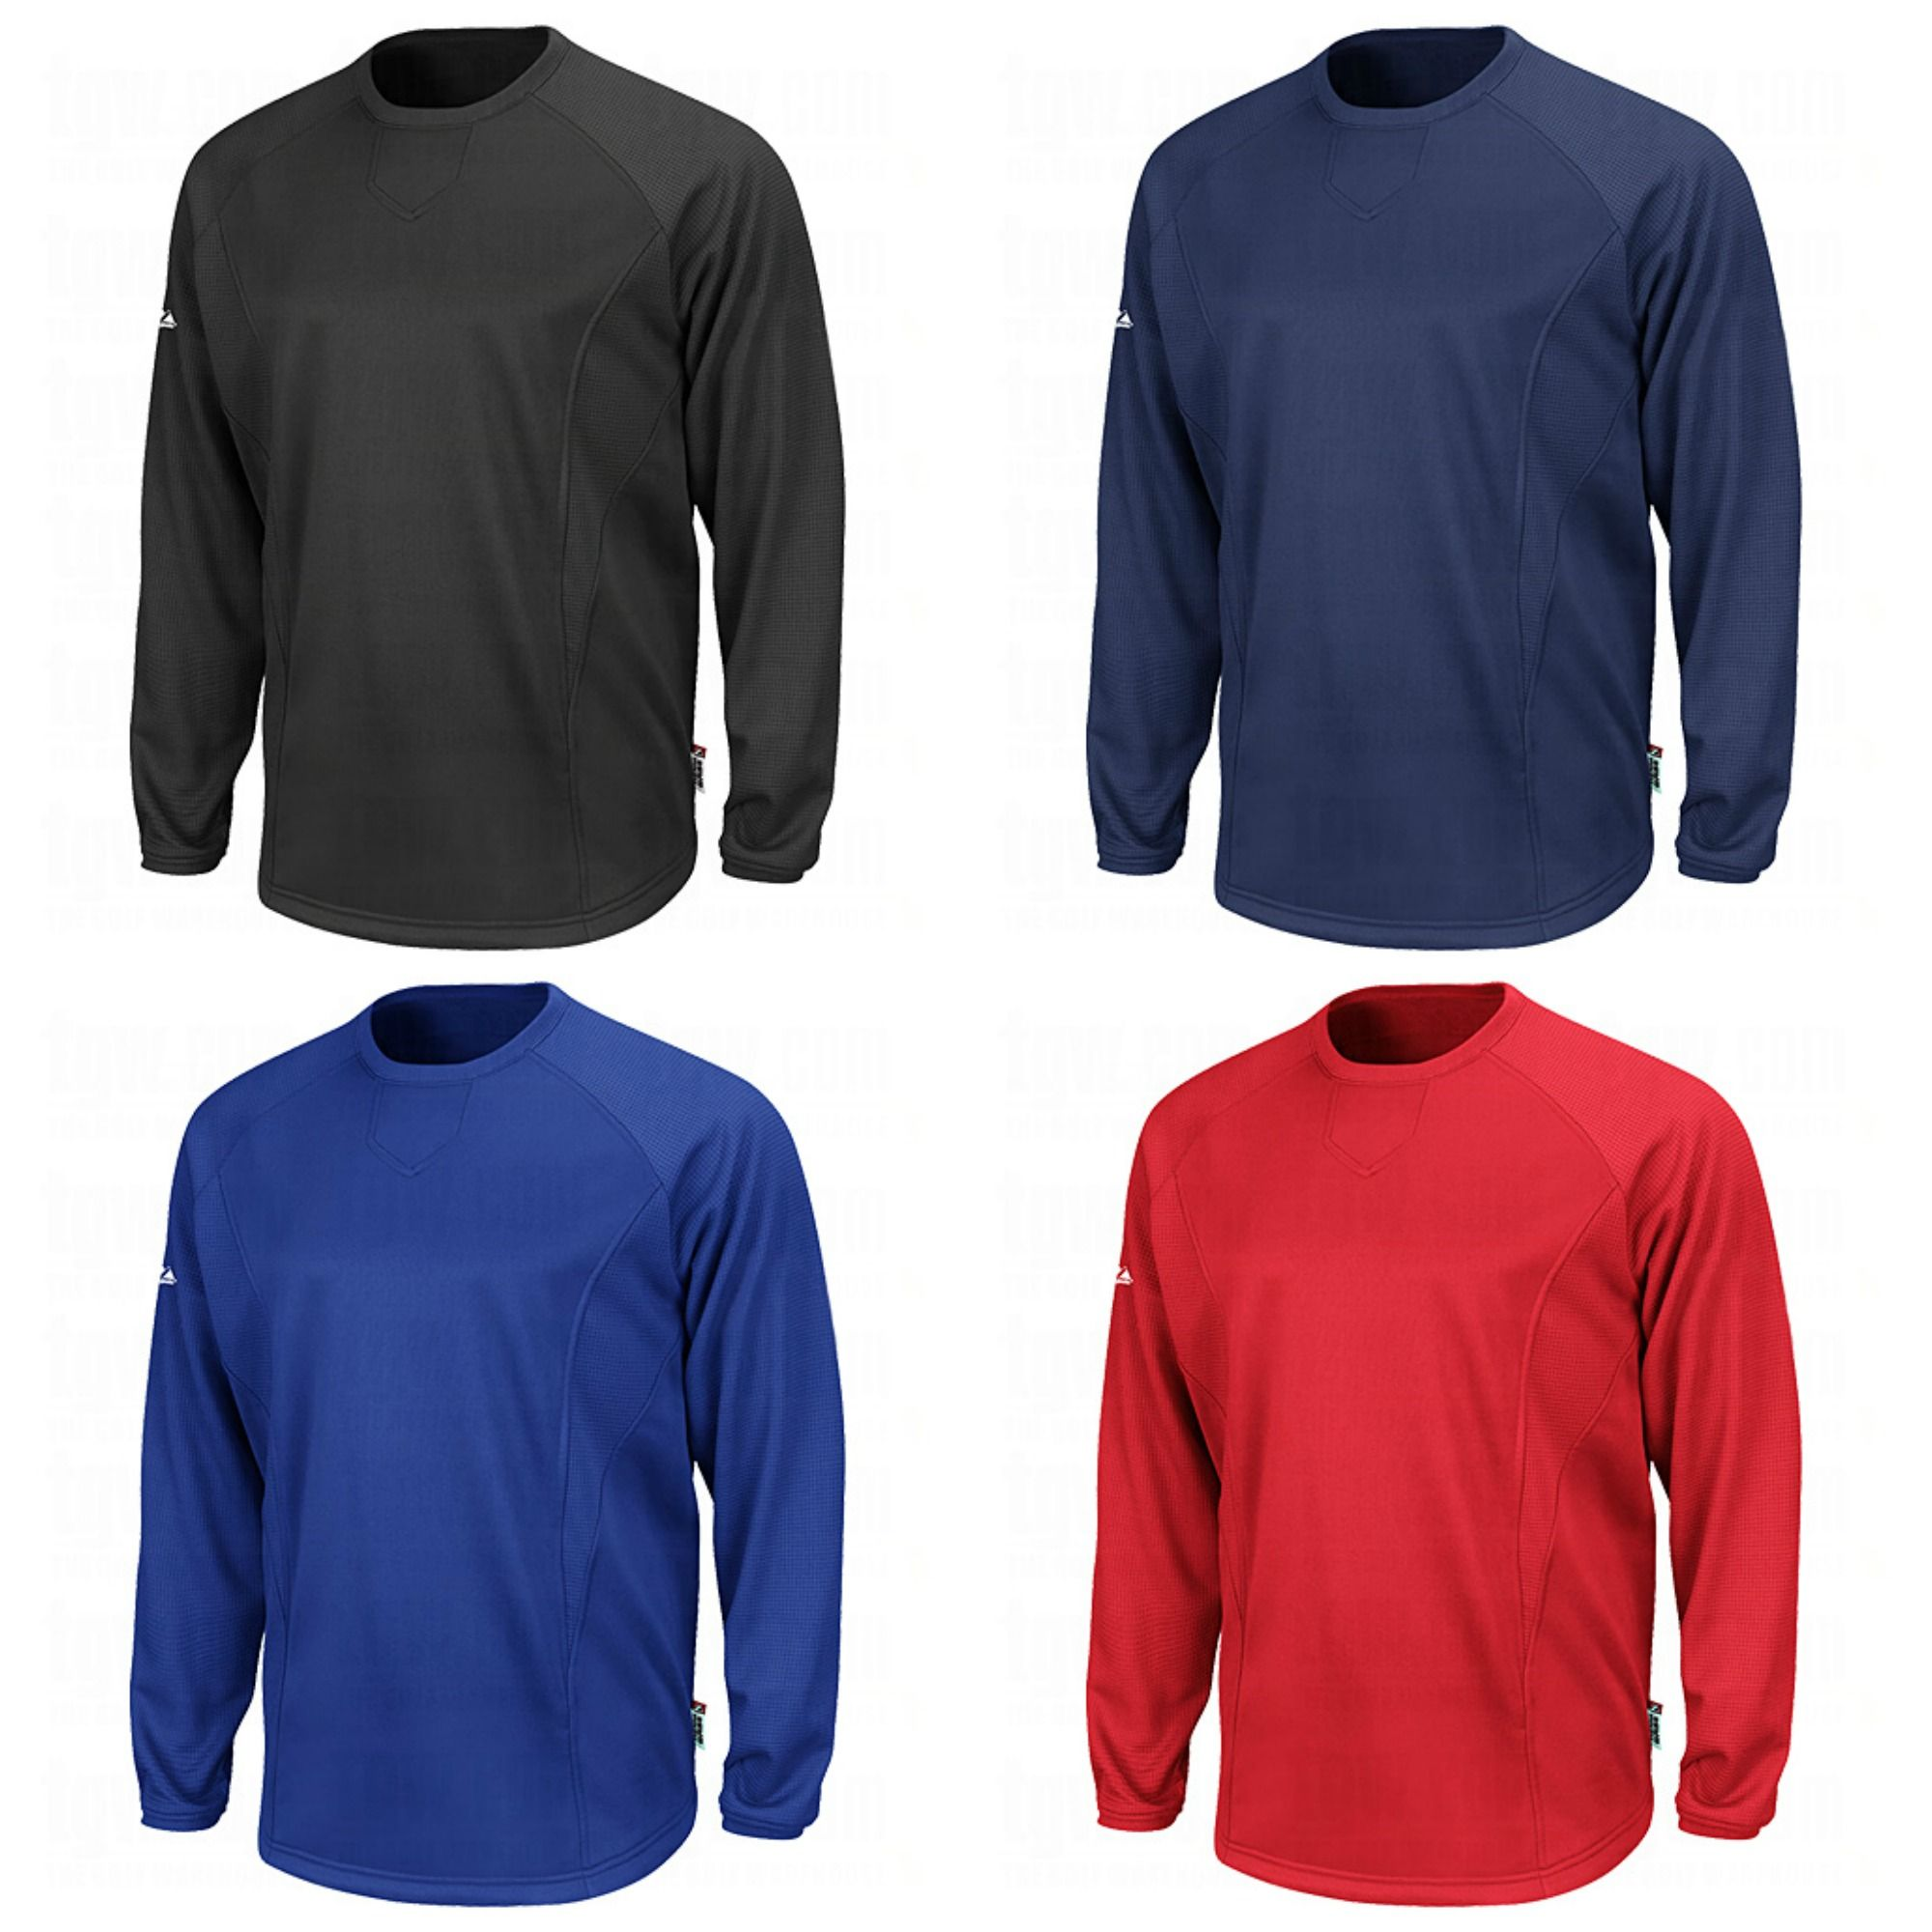 Majestic Therma Base Pro Style Fleece Training Pullovers #Majestic ...